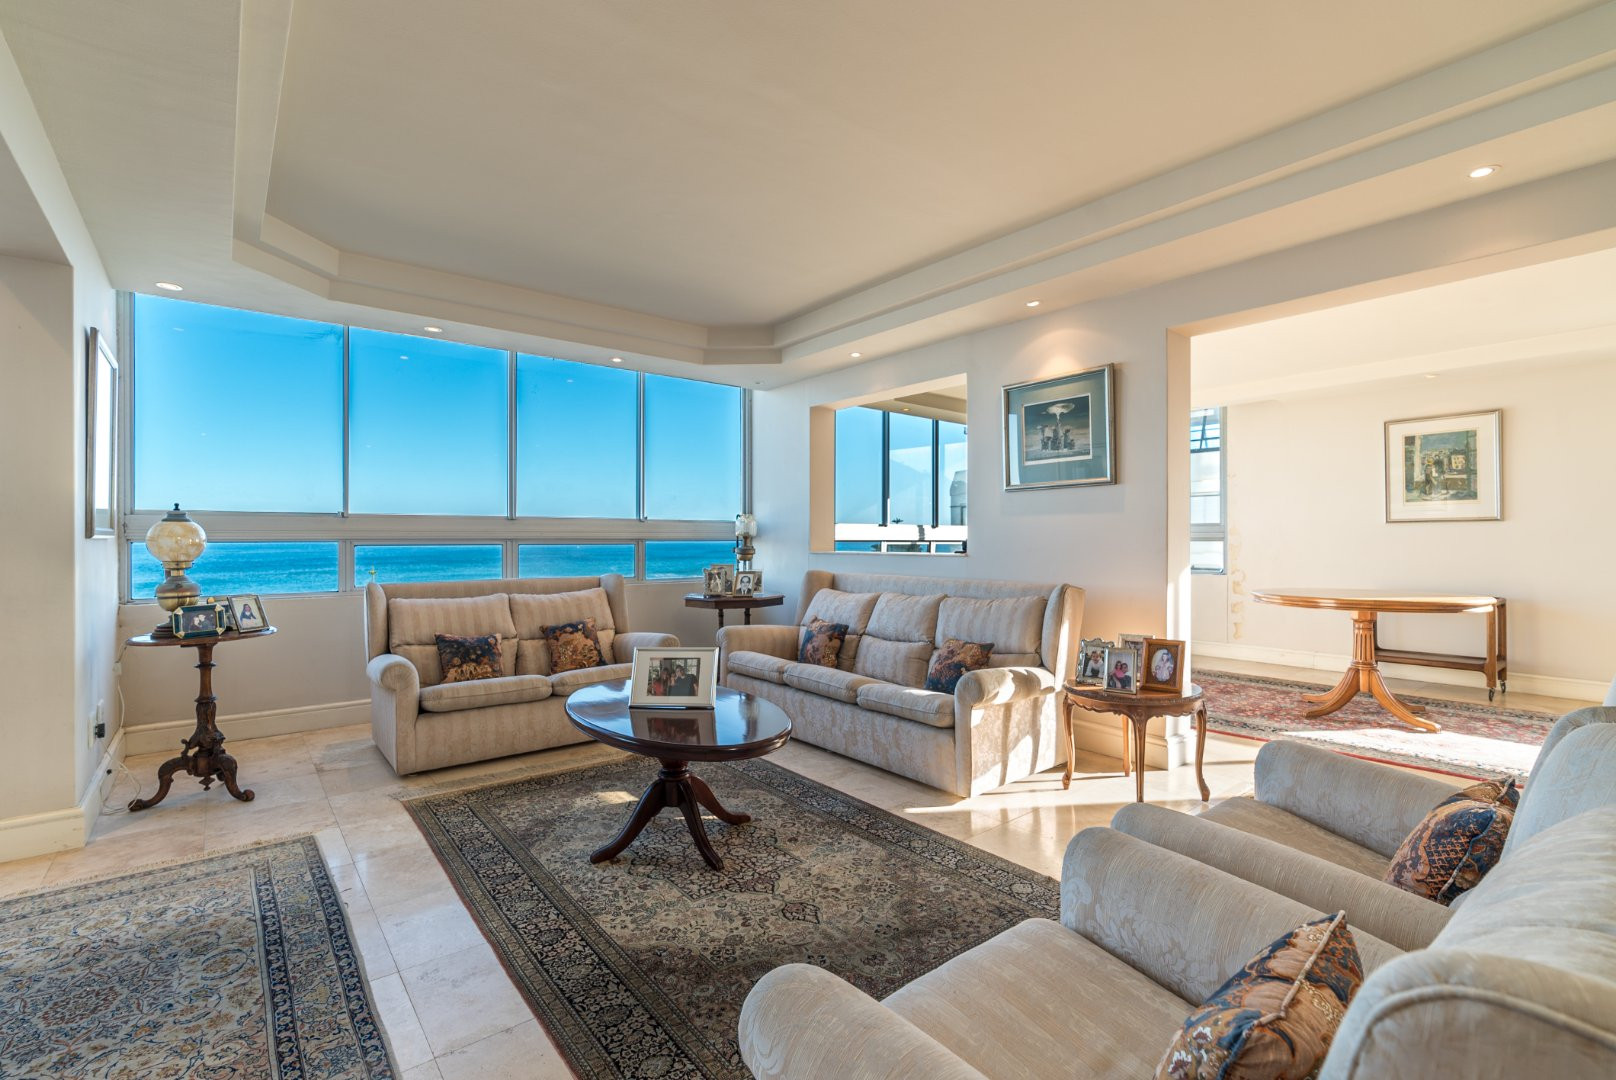 Apartment For Sale With Uninterrupted Sea Views!